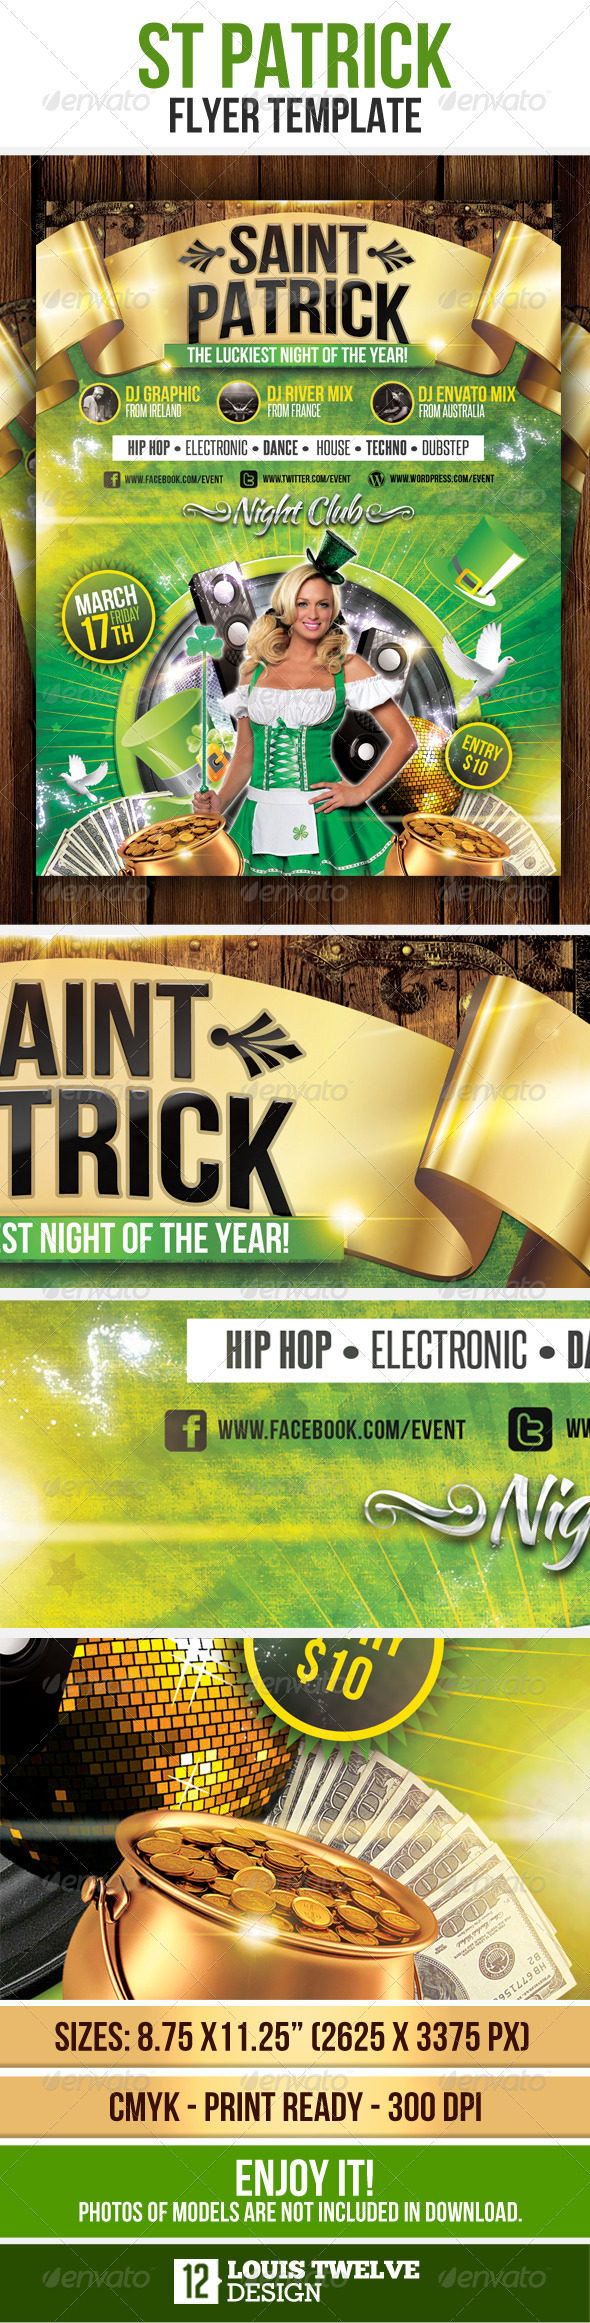 GraphicRiver St Patricks Flyer Template 1640264